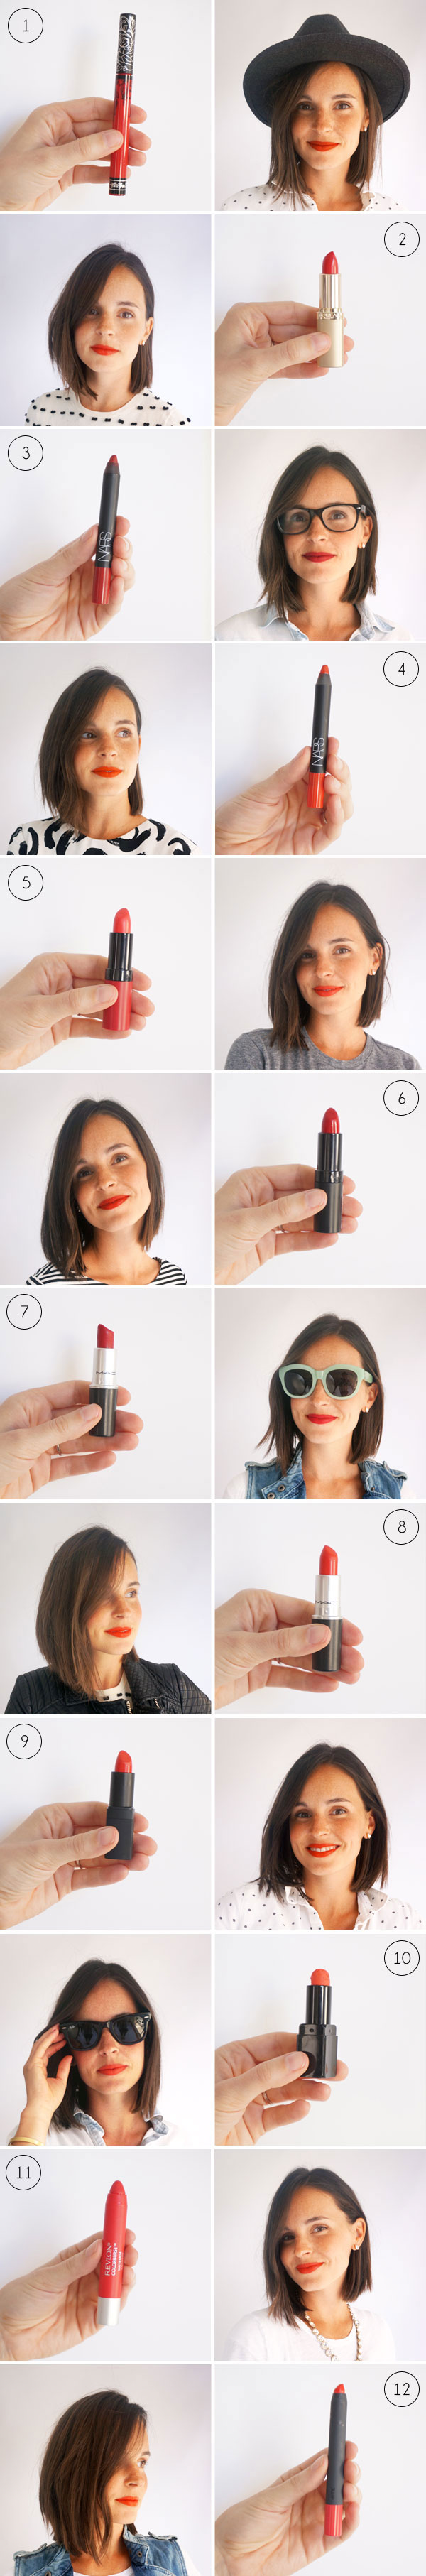 Best Red Lipstick | Oh Happy Day!